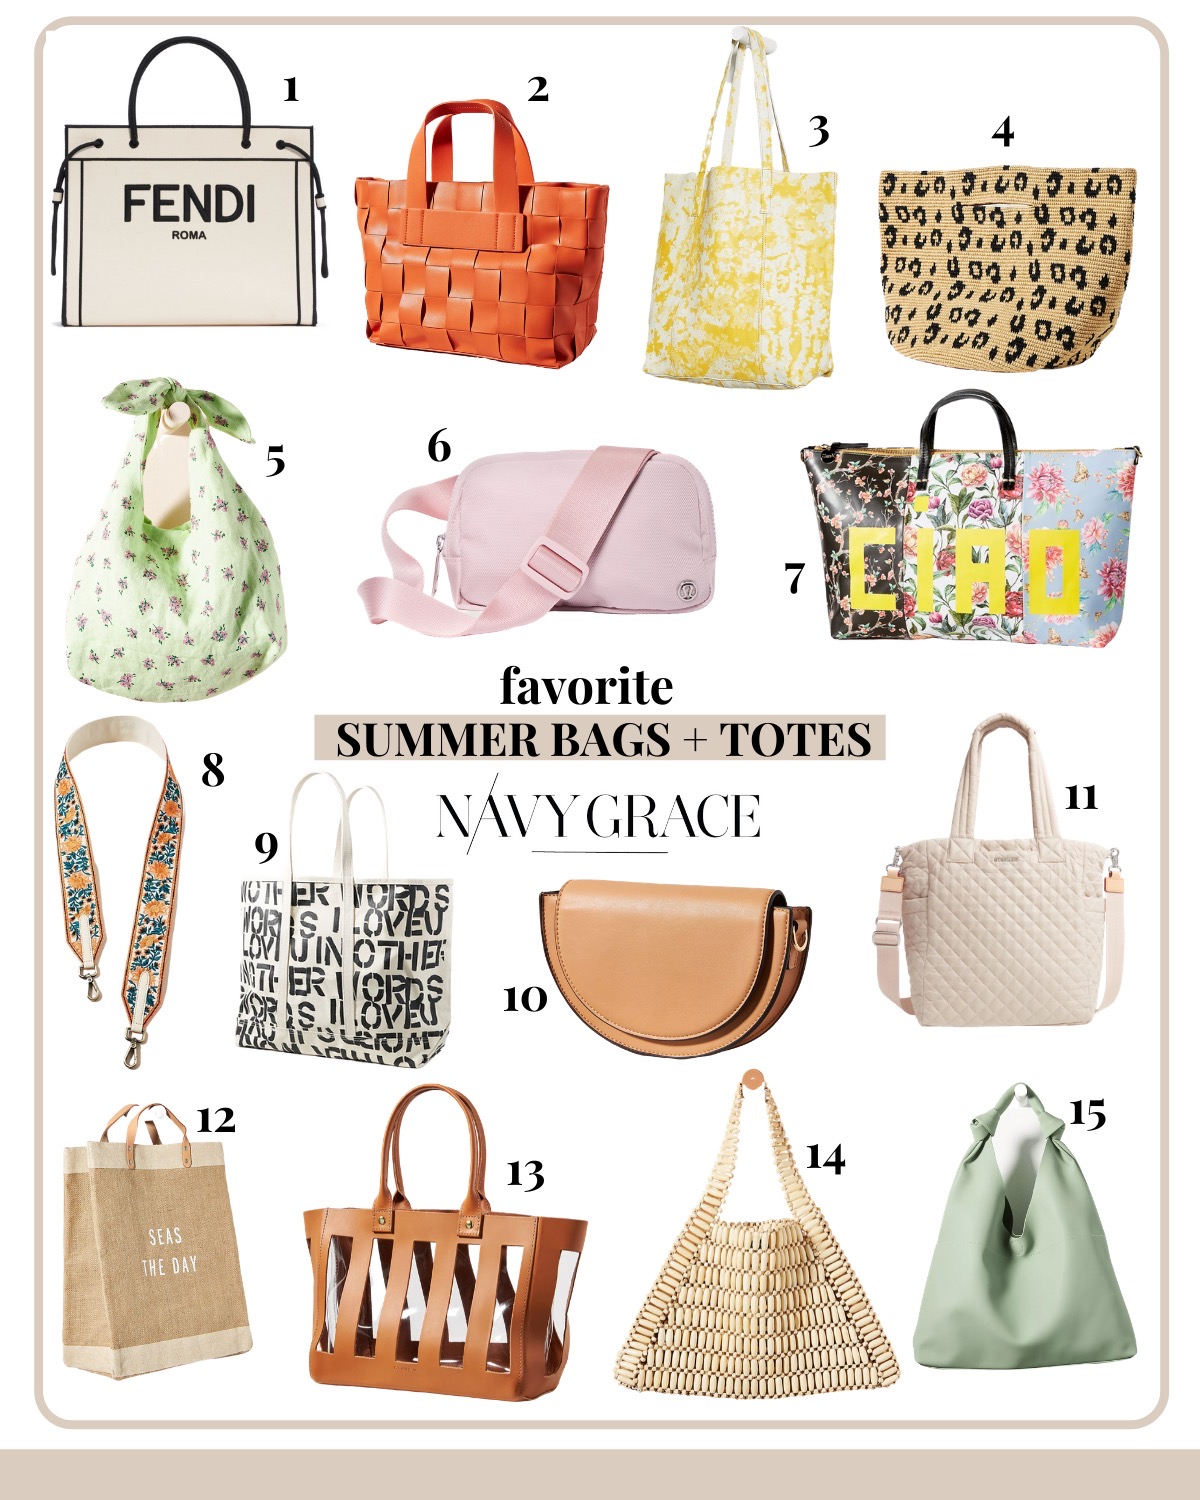 Summer Handbags by popular San Diego fashion blog, Navy Grace: collage image of a Fendi Roma Shopper, Anthropologie Antoinetta Woven Tote Bag, Anthropologie  Hover your mouse over an image to zoom.  Anya Leather Tote Bag, Anthropologie Leopard Shopper Clutch, Anthropologie Madeline Embroidered Bag Strap, Lululemon Everywhere Belt Bag, Anthropologie  Hover your mouse over an image to zoom.  Fly Me To The Moon Canvas Tote Bag, Anthropologie  Hover your mouse over an image to zoom.  Lettie Crossbody Bag, Anthropologie  Hover your mouse over an image to zoom.  Seas The Day Tote Bag, Nordstrom Max II Tote MZ WALLACE, Anthropologie Clare V. Rafael Tote Bag, Anthropologie Bamboo Beaded Tote Bag, and Anthropologie Este Slouchy Tote Bag.